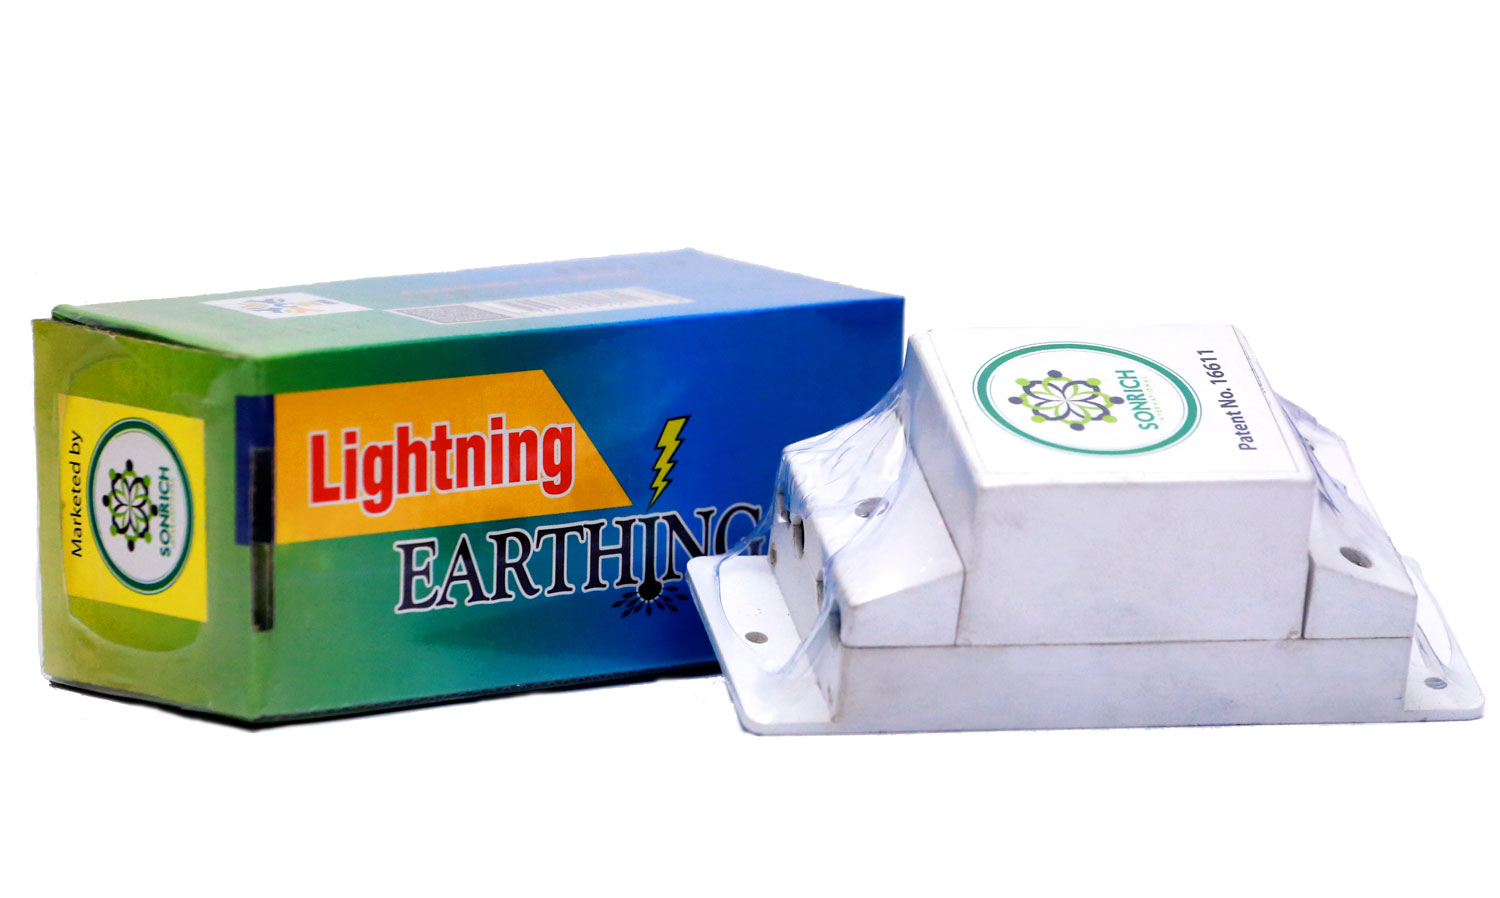 Lightning Earthing (50 Yrs Warranty)